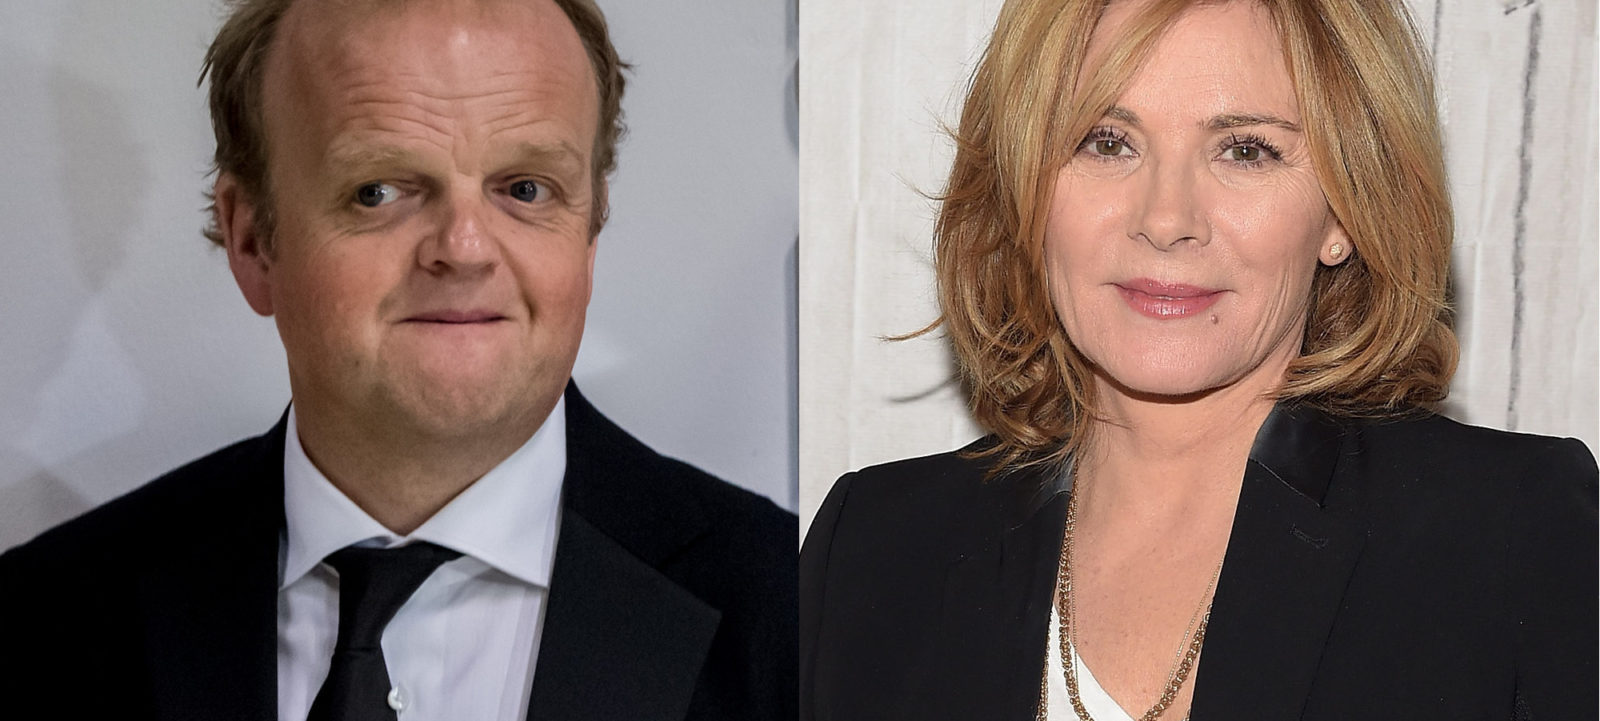 Toby Jones and Kim Cattrall composite